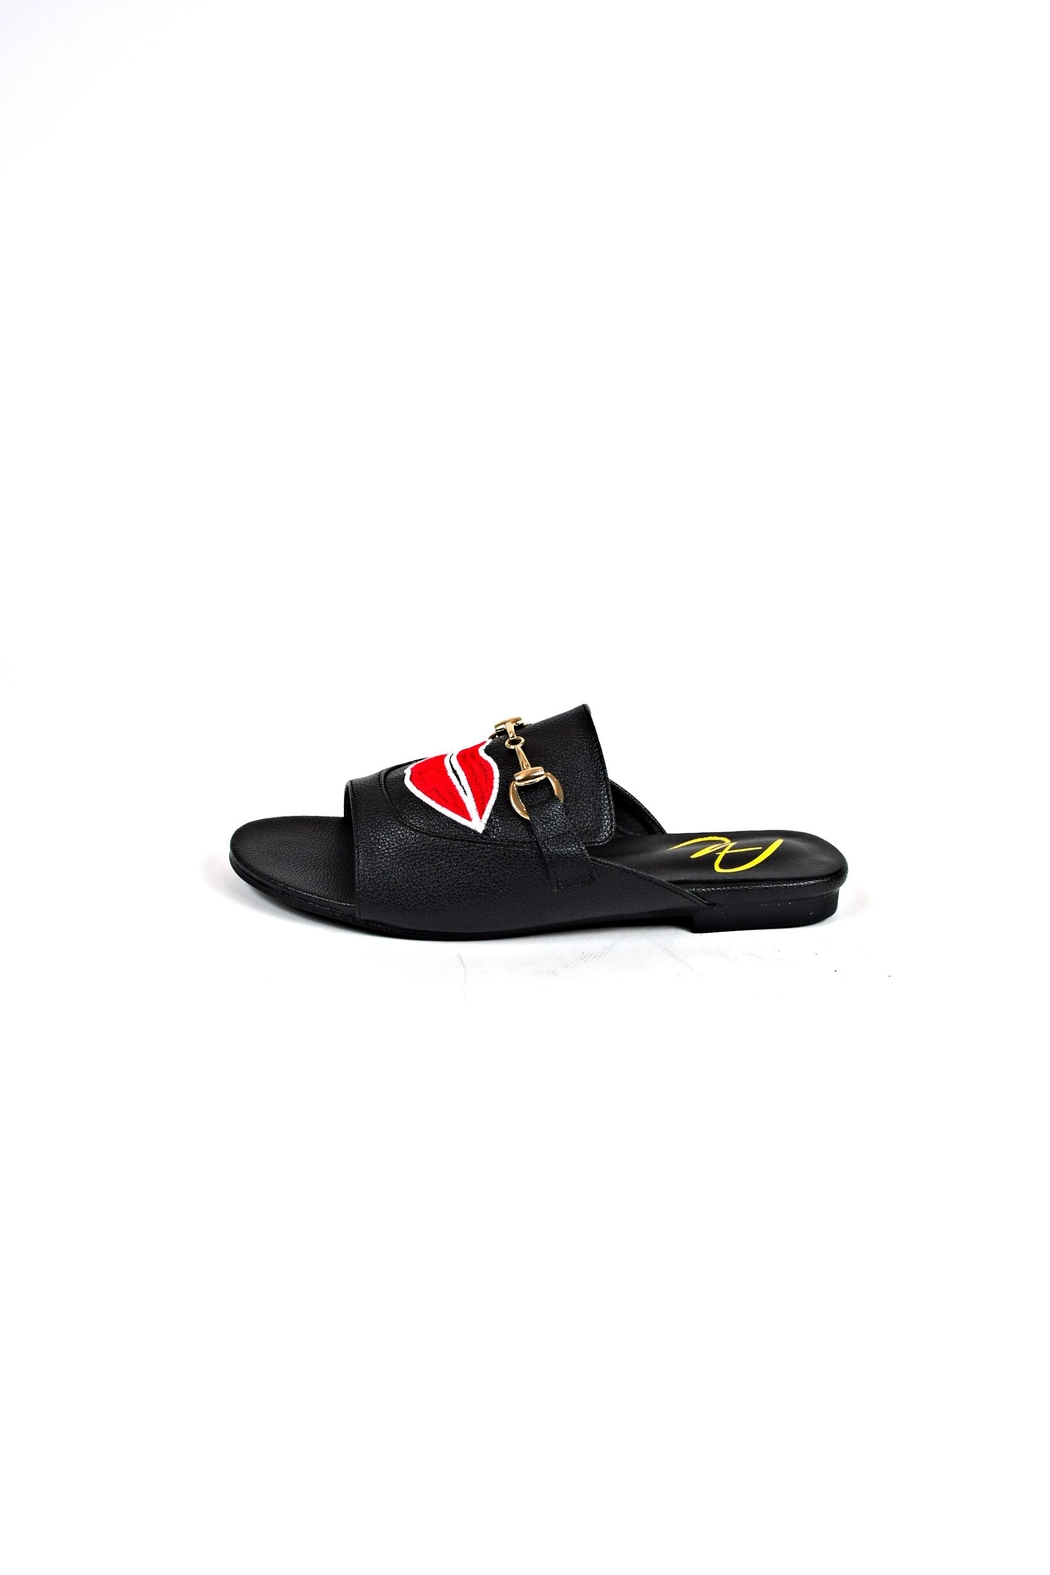 Ana Colina Boutique Black Lips Slide Sandals - Main Image